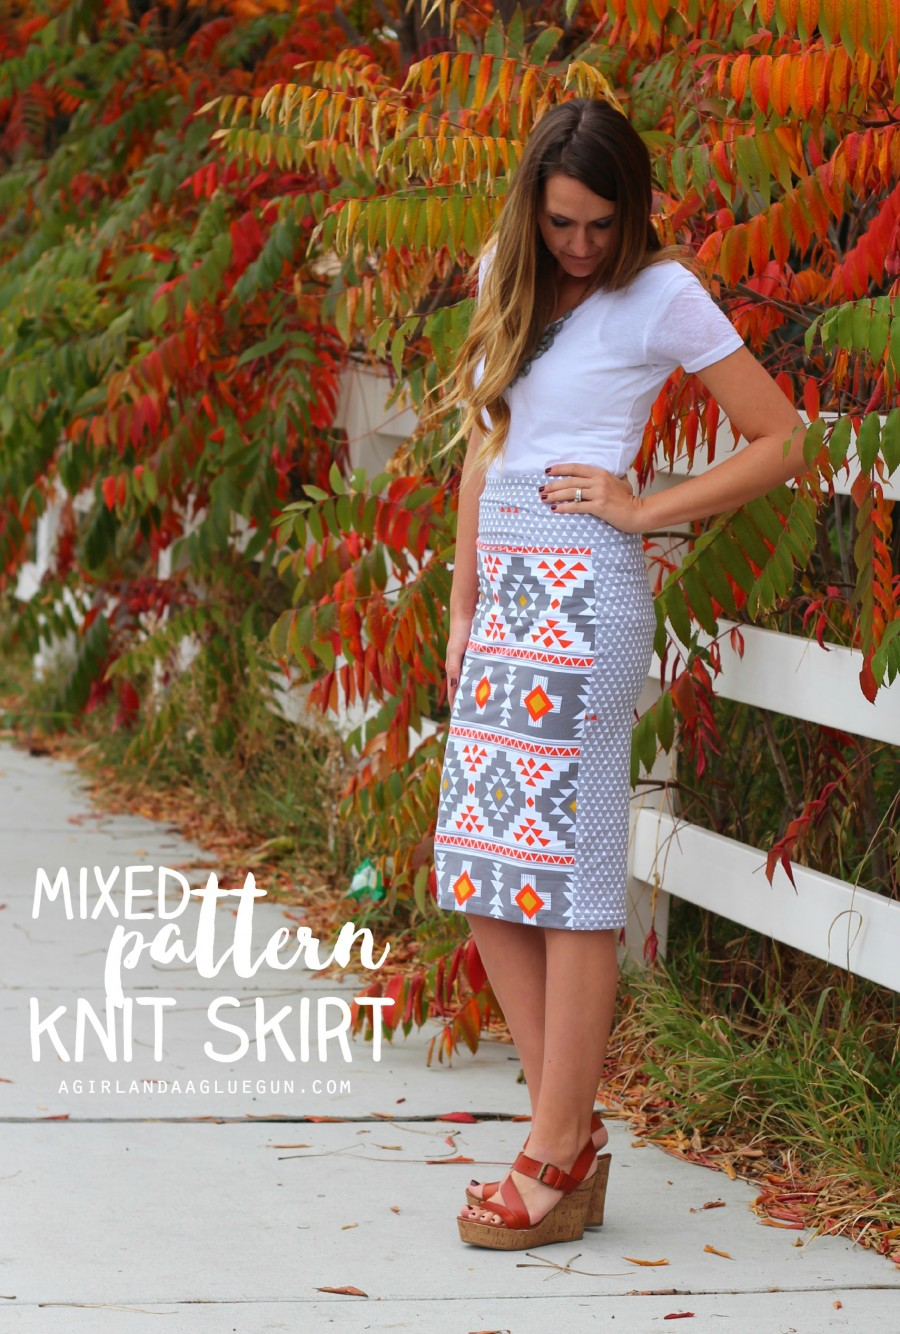 mixed-pattern-knit-skirt-four-corners-fabric-900x1334